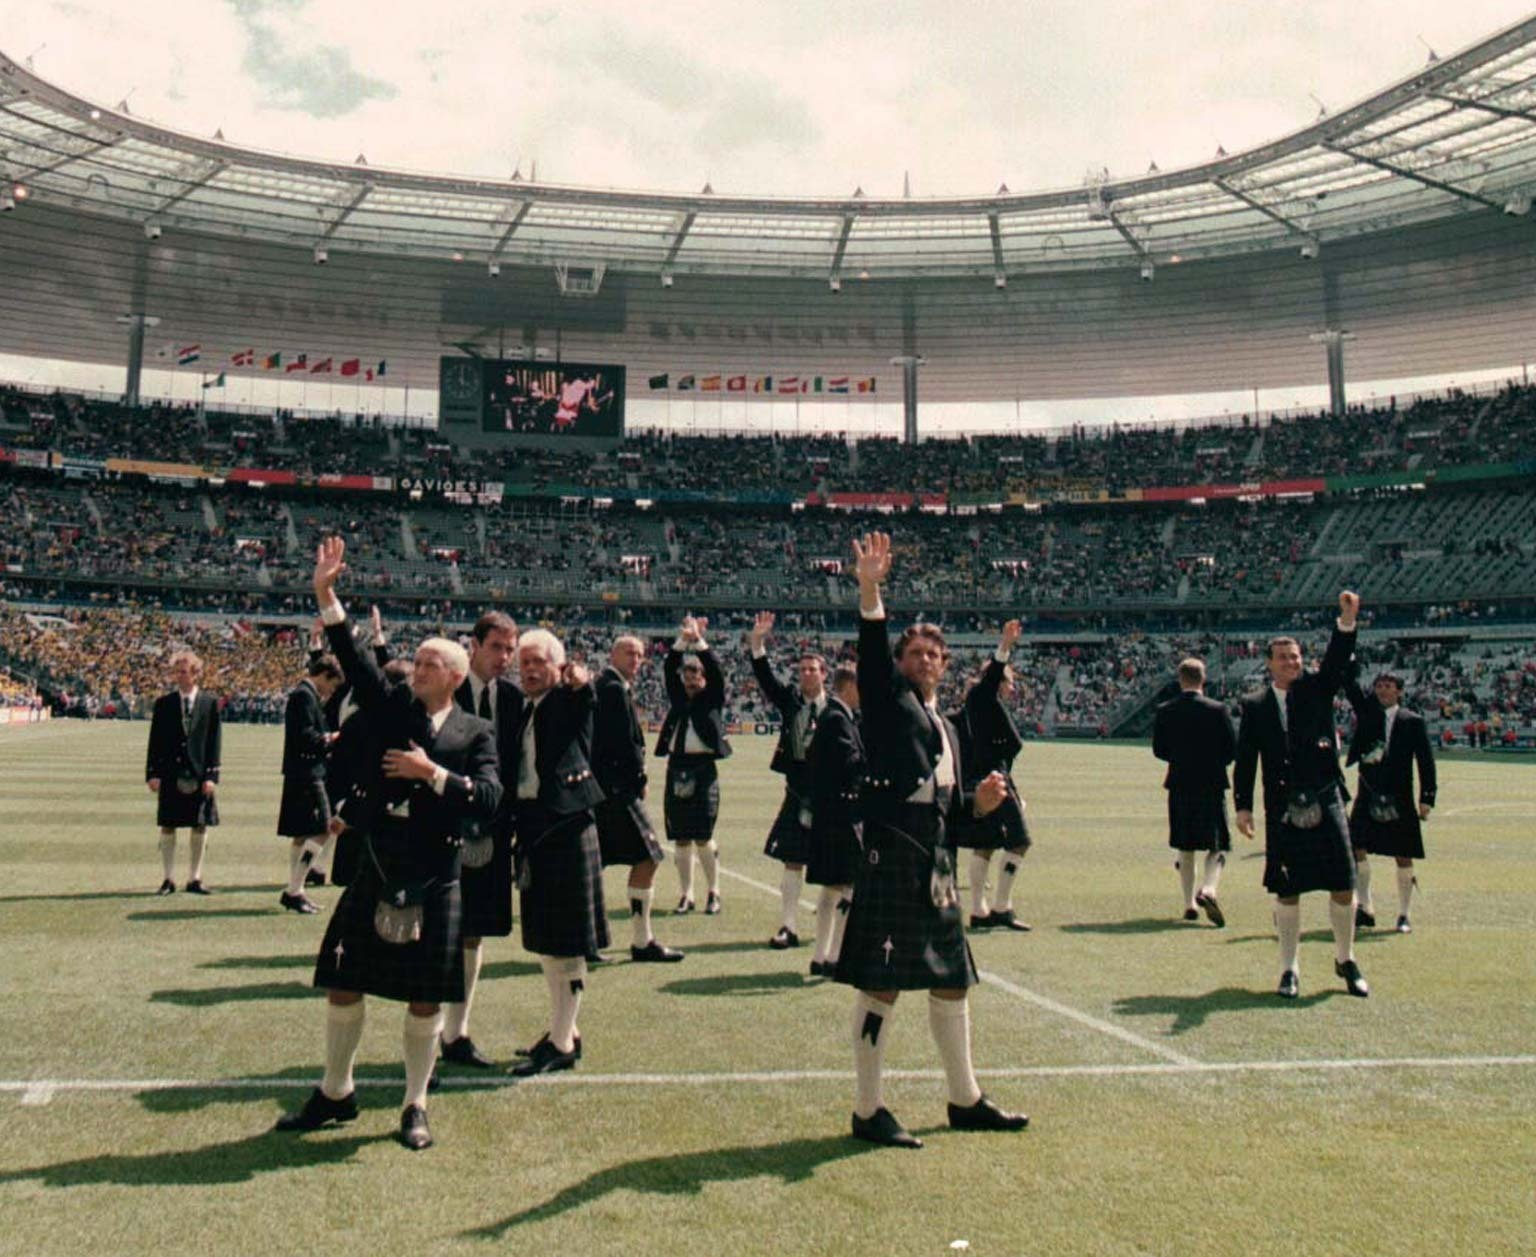 The Scotland squad arrive at the Stade De France for their World Cup match against Brazil.